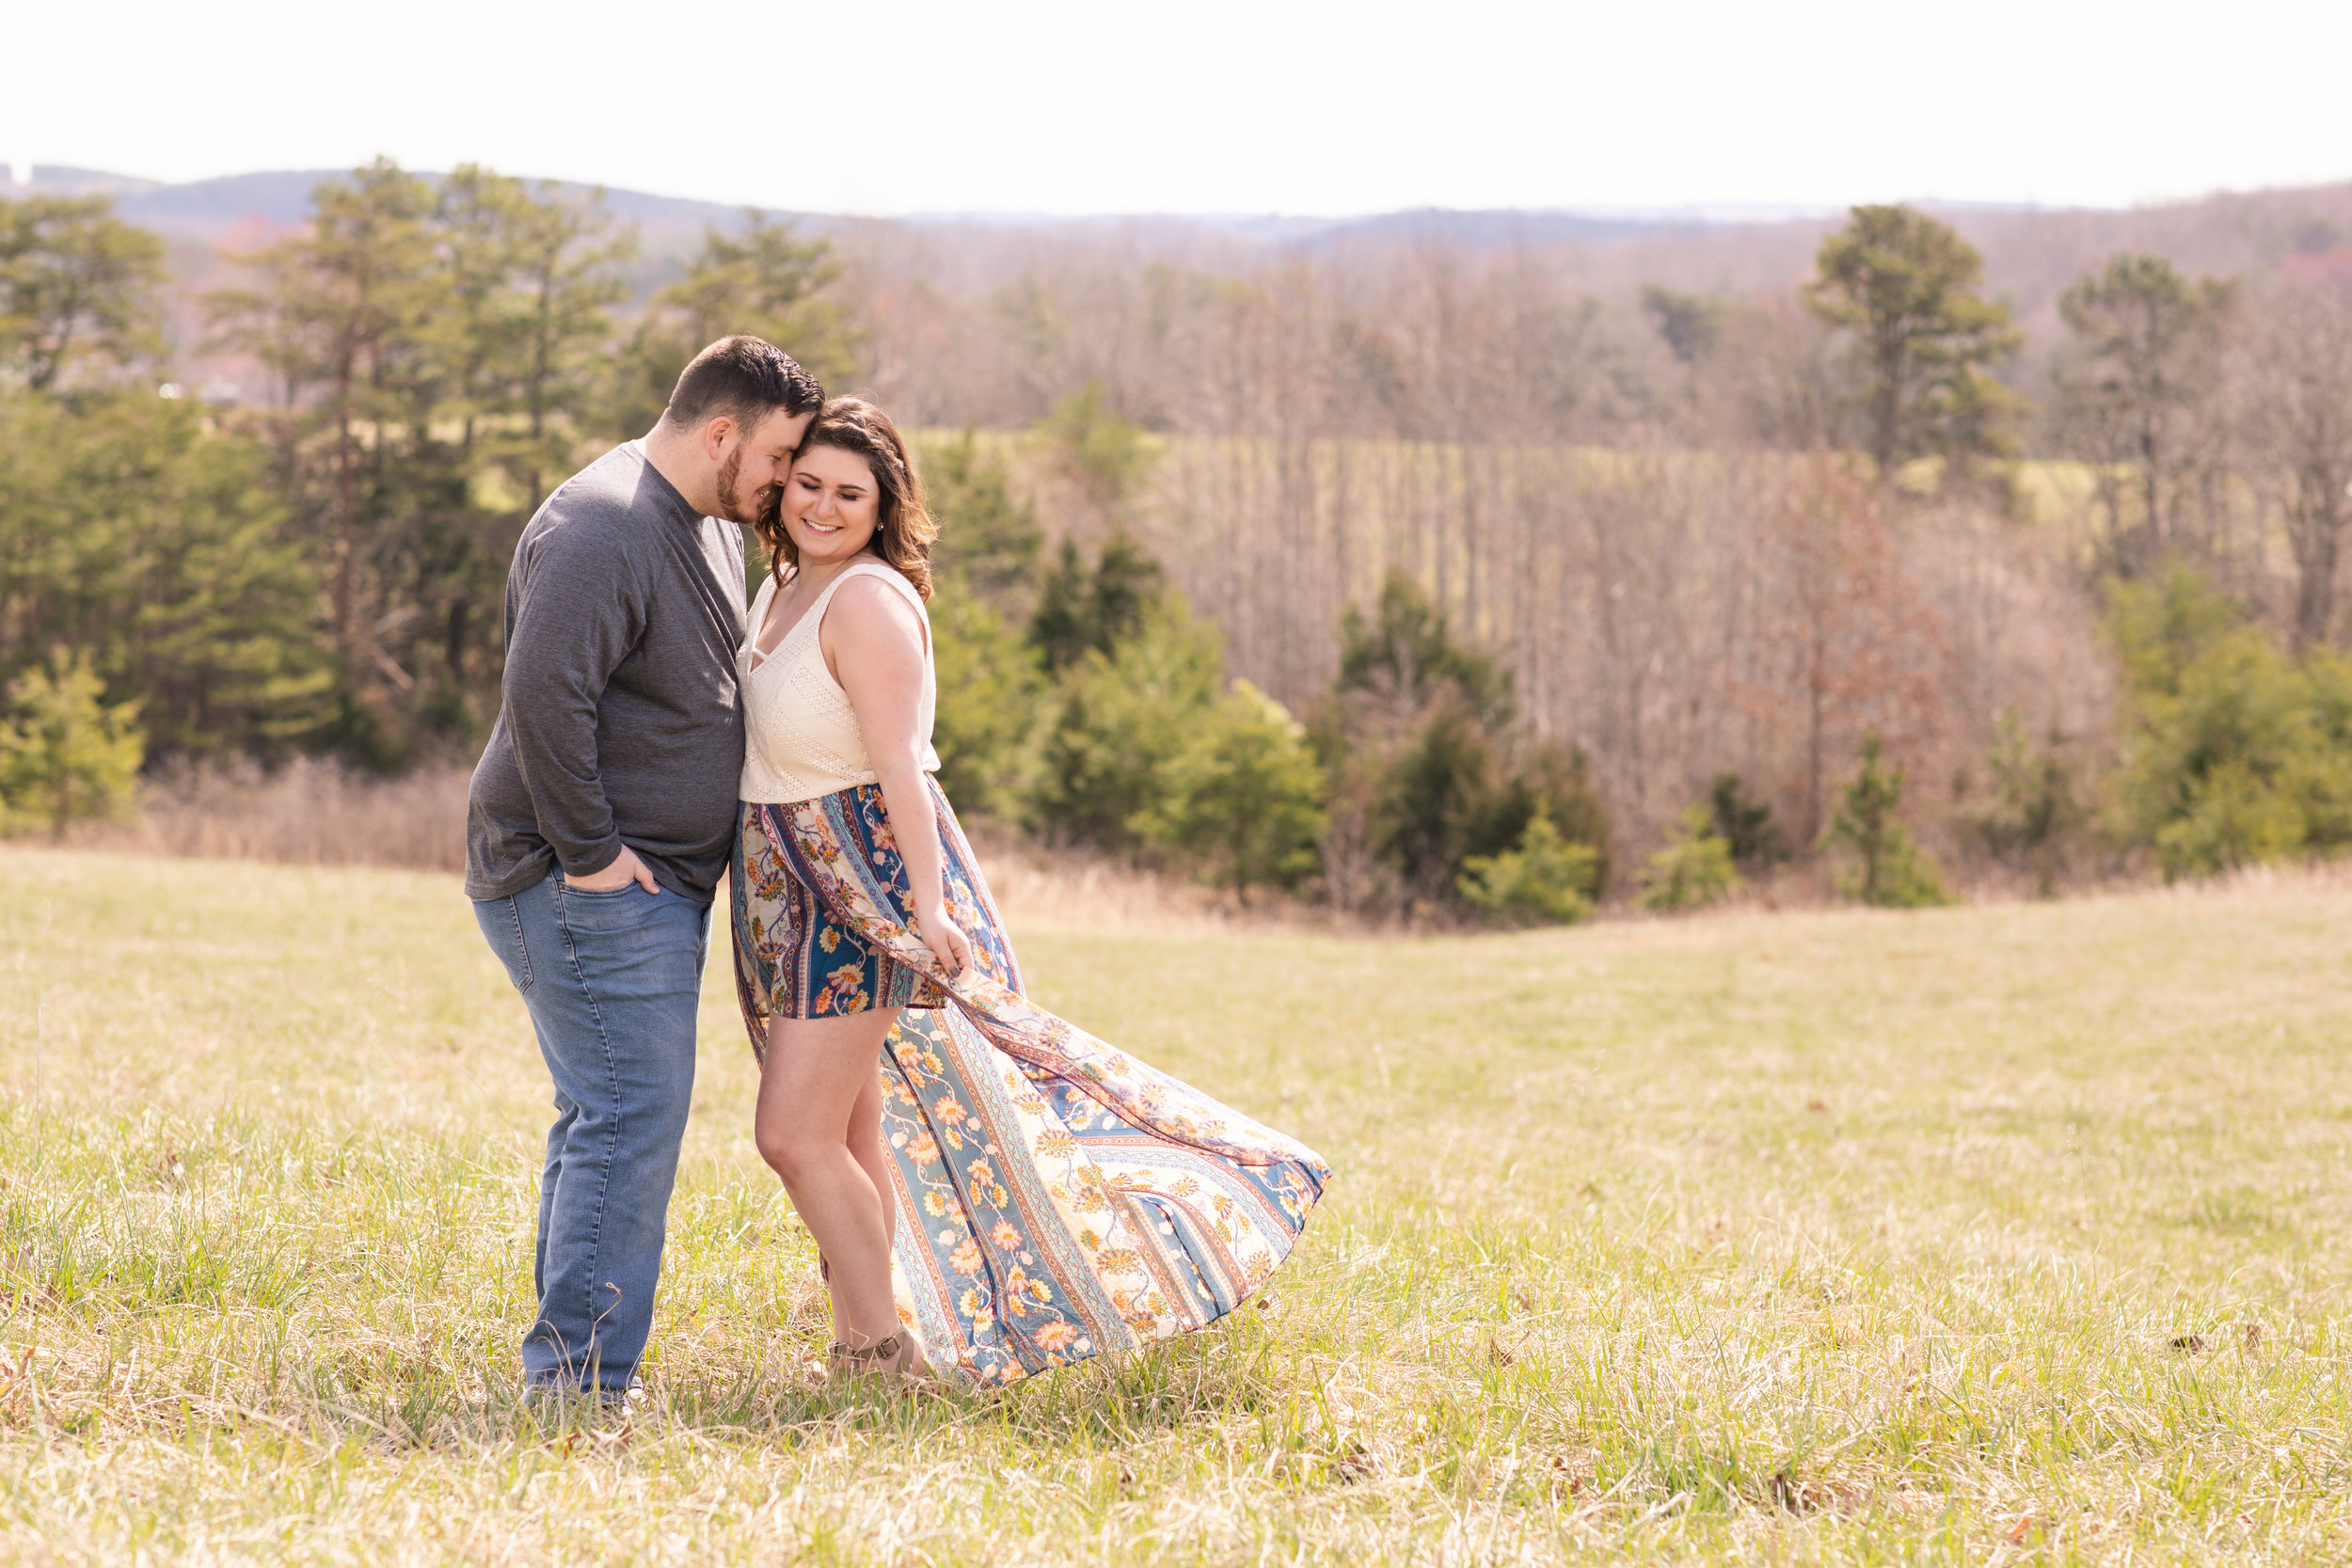 Check out Derrick and Kayla's Engagement Session  HERE